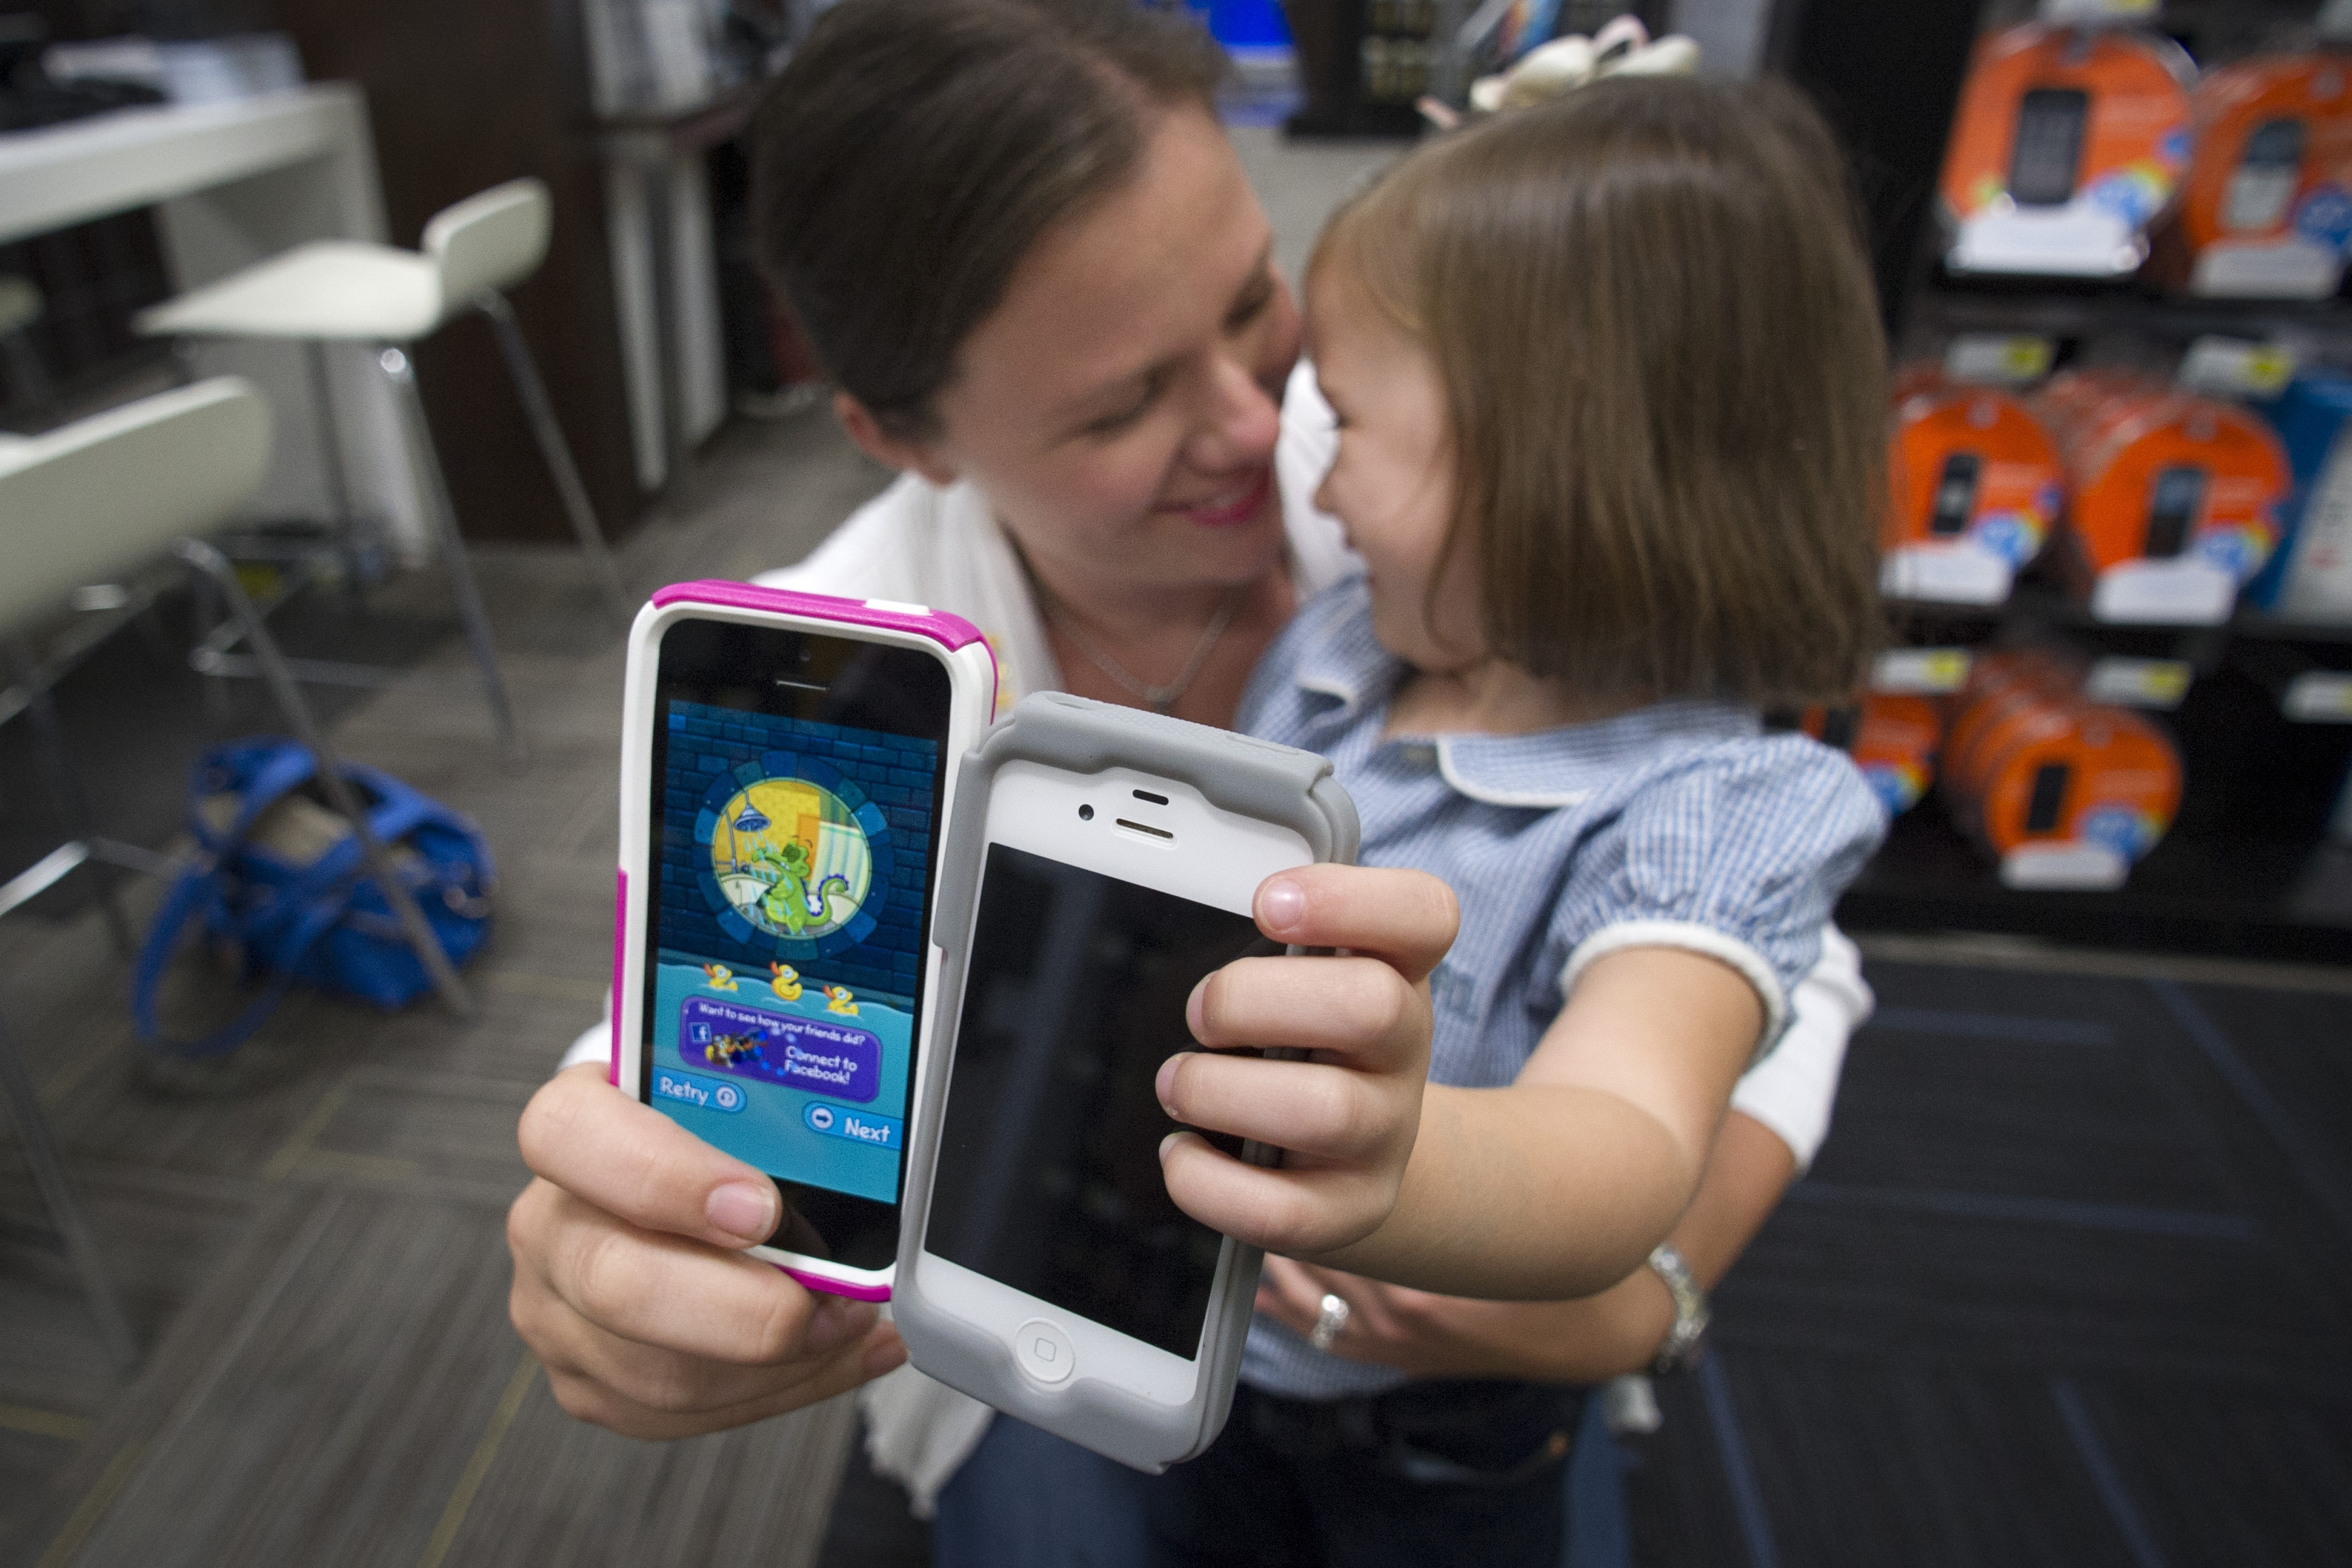 Isabel Ramo, 3, holds an iPhone 4 while her mom, Christen Ramo, shows offer her new iPhone 5s.